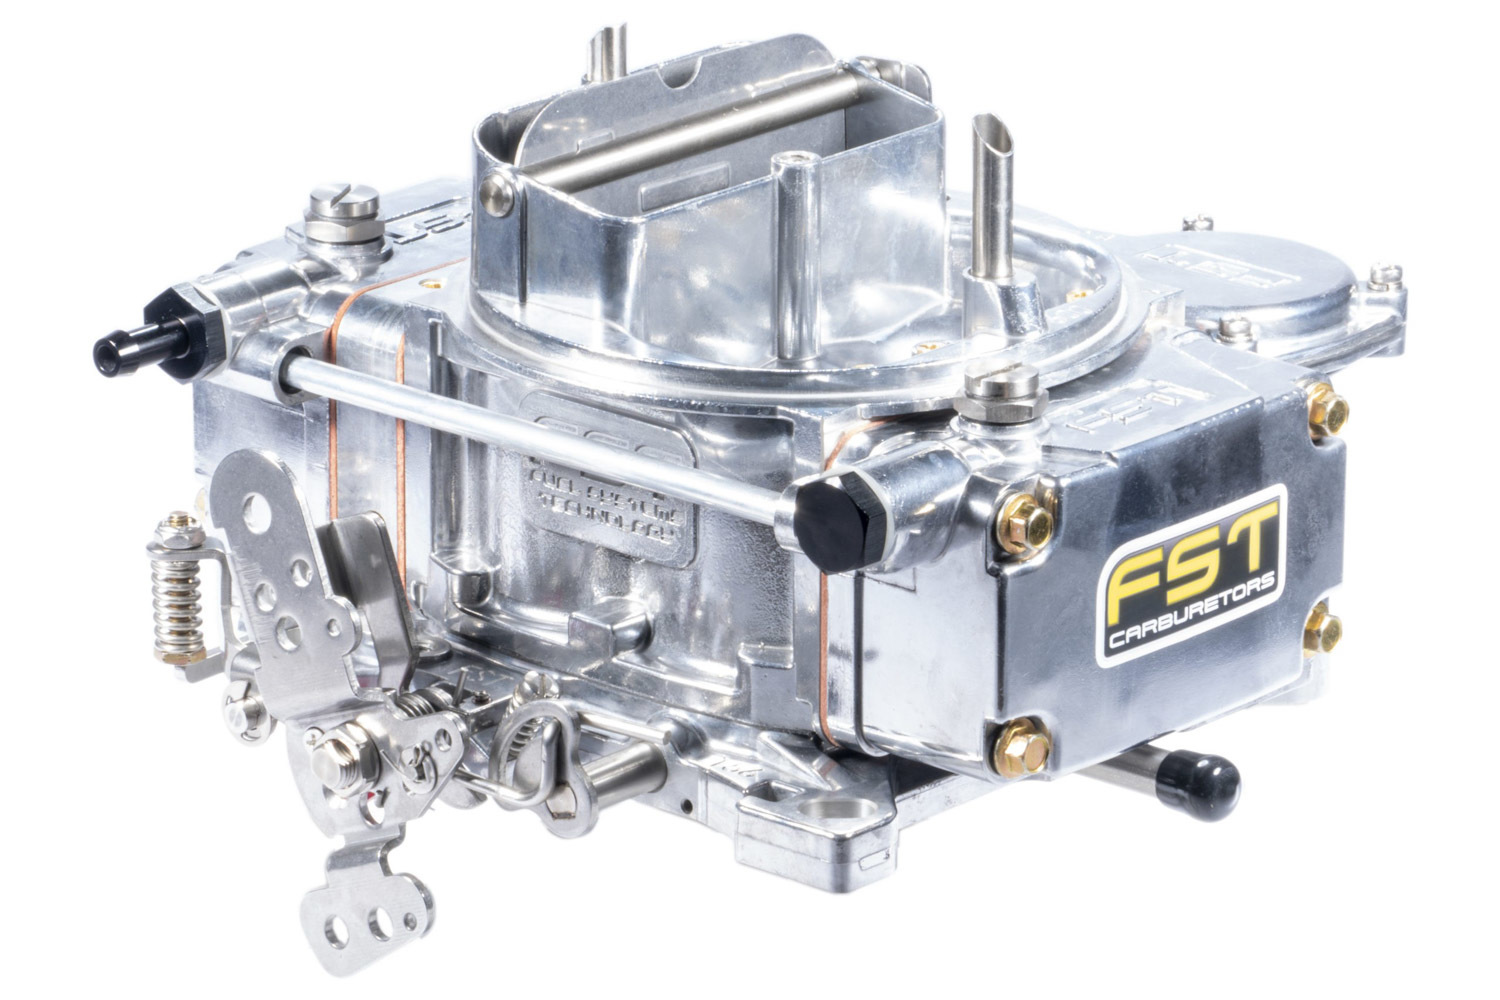 FST Performance Carburetor 40750 RT Carburetor 750CFM Vacuum Secondary